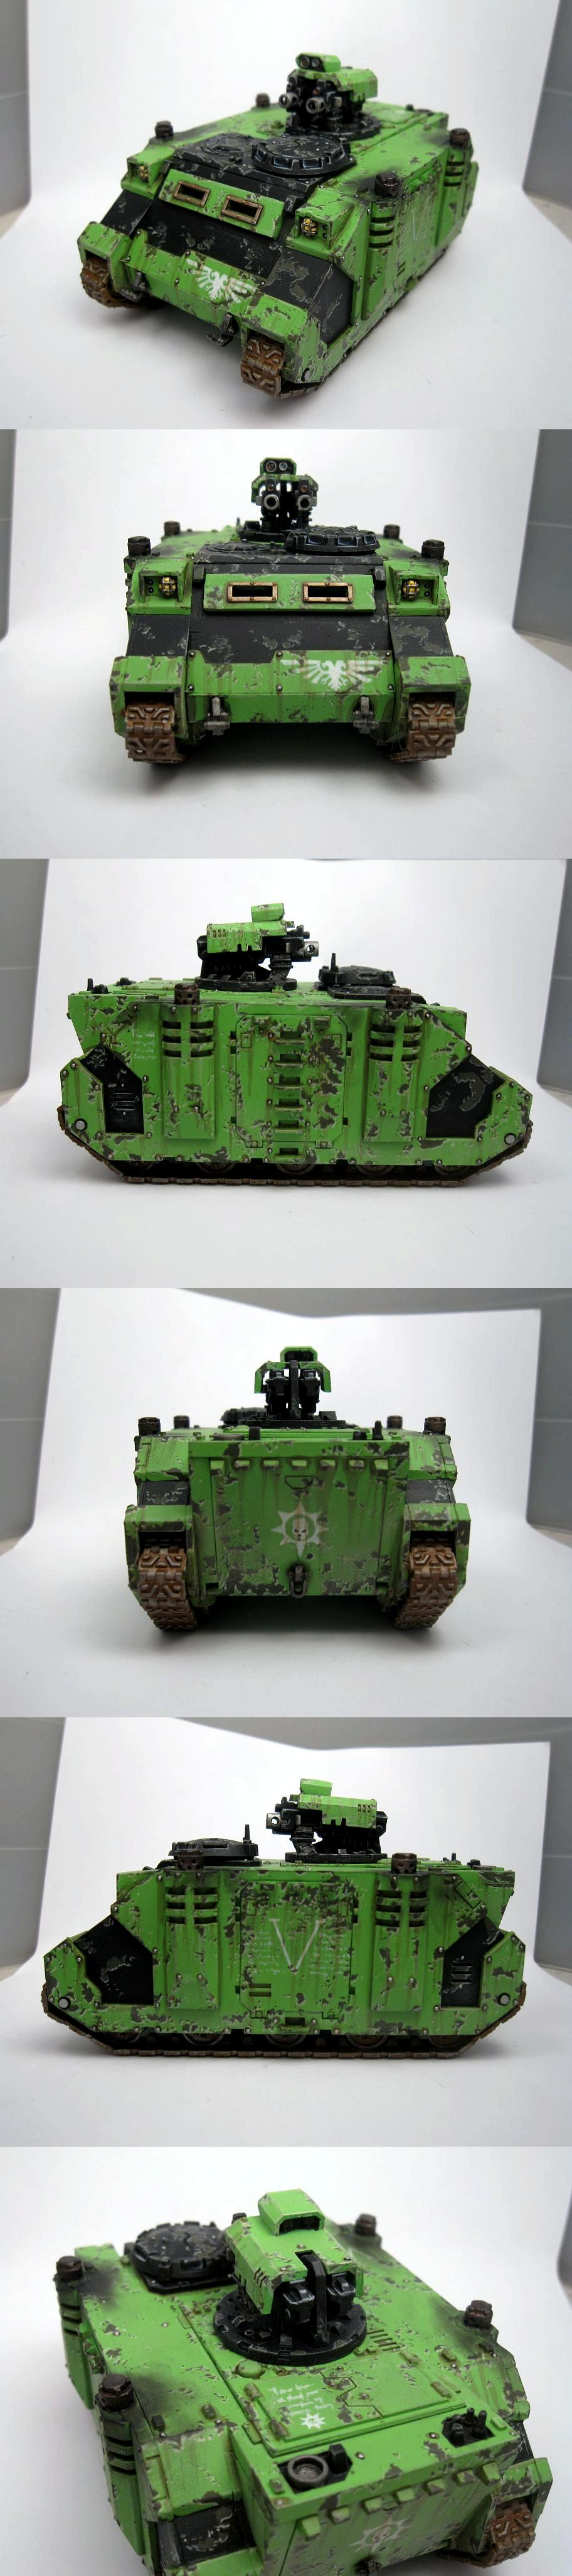 Armor, Badab War, Razorback, Space Marines, Transport, Vehicle, Warhammer 40,000, Weathered